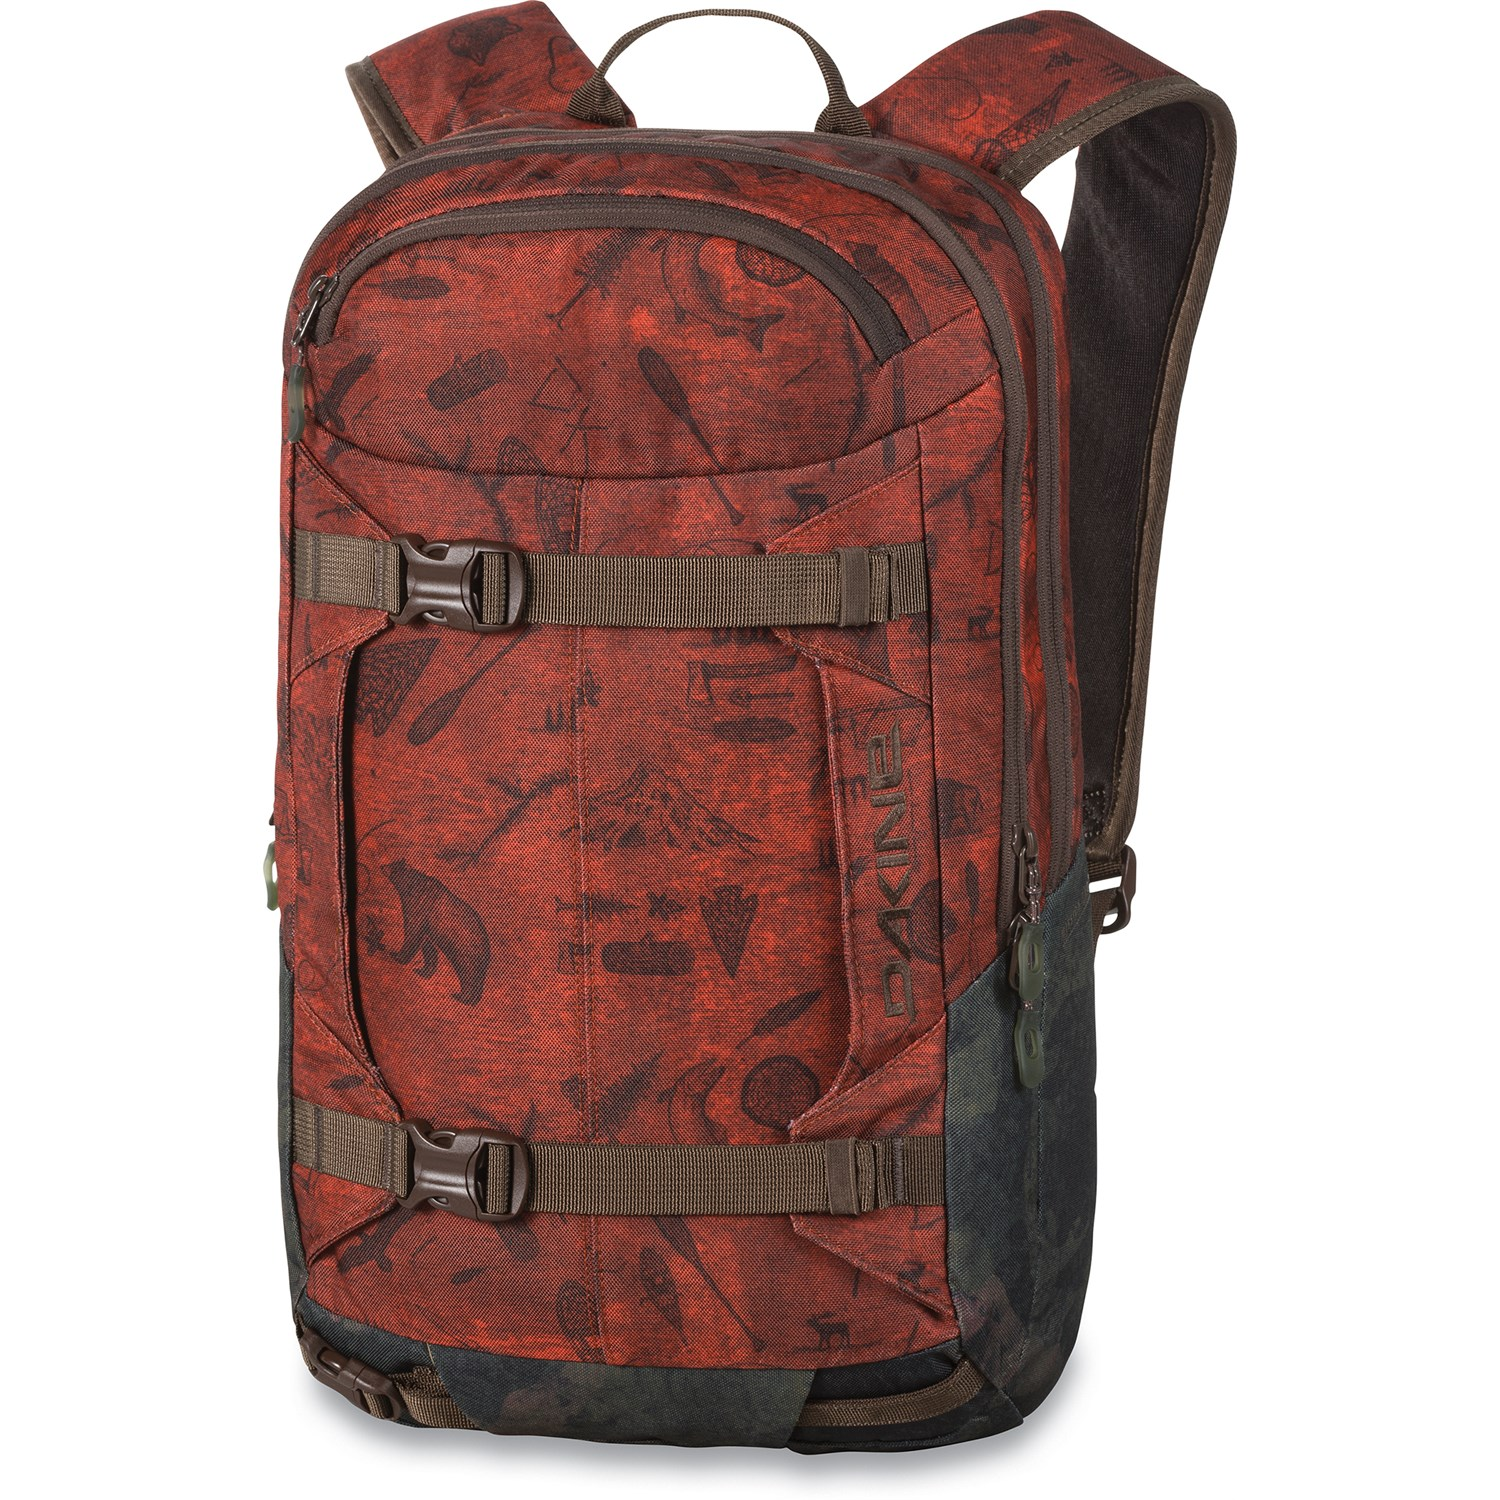 Dakine Bags Backpacks & Luggage